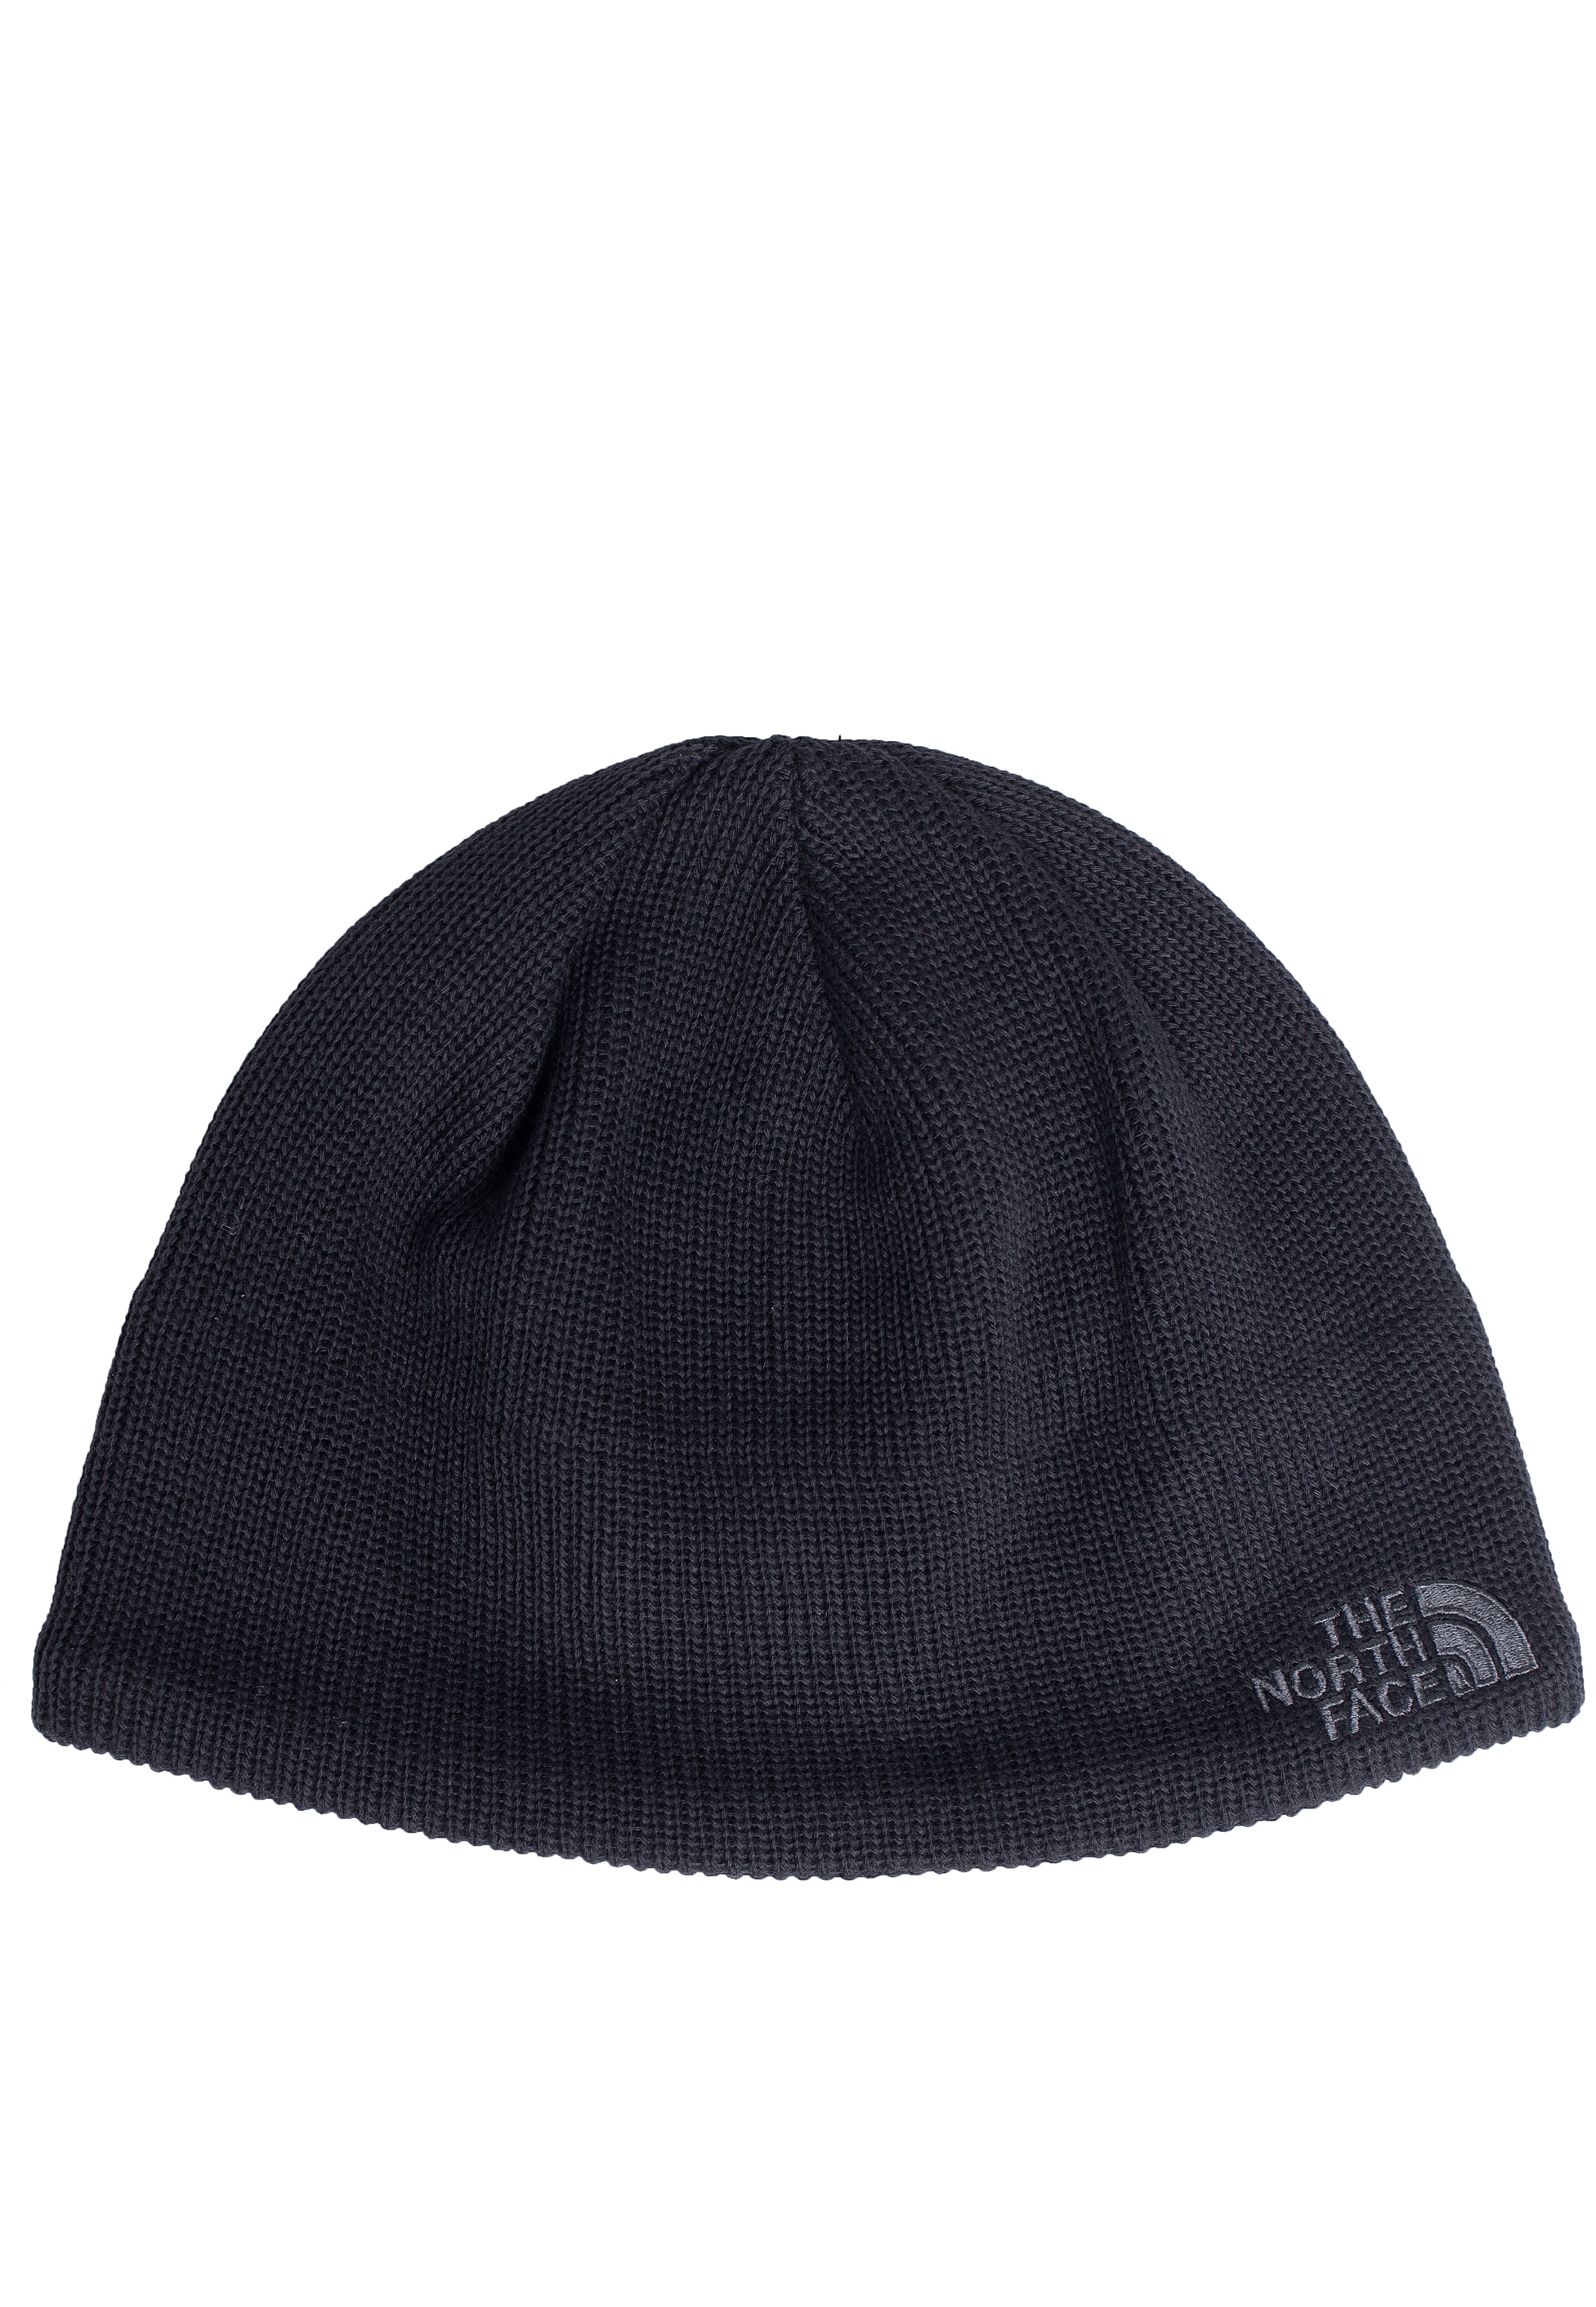 The North Face - Bones Recycled Black - Beanies